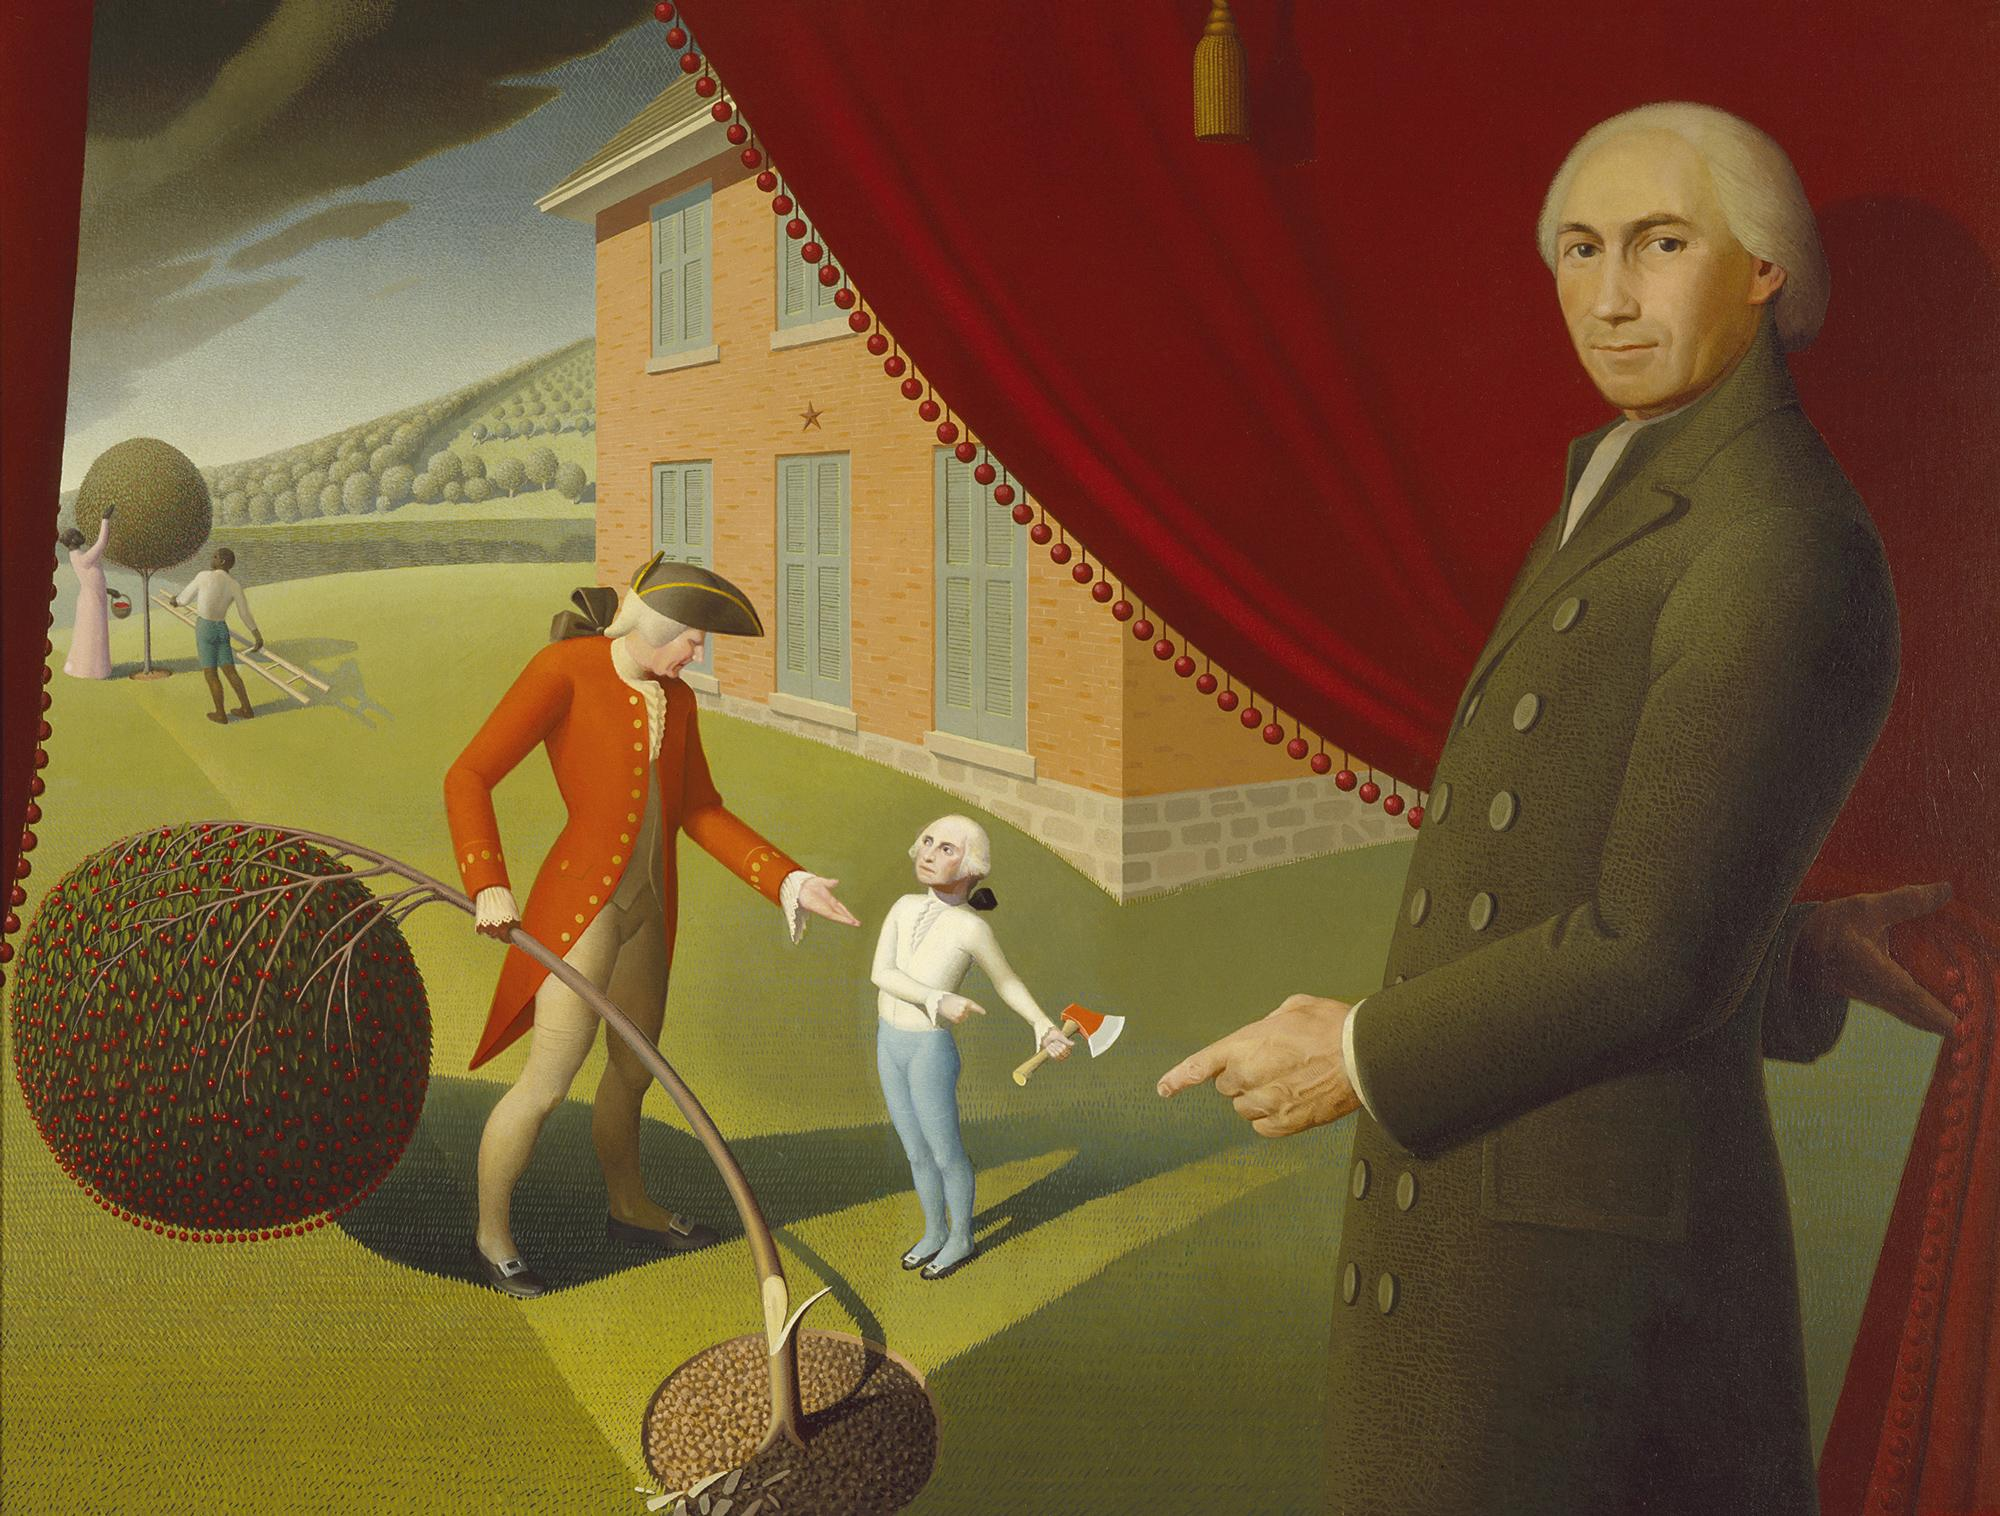 Parson Weems's Fable (Amon Carter Museum of American Art)